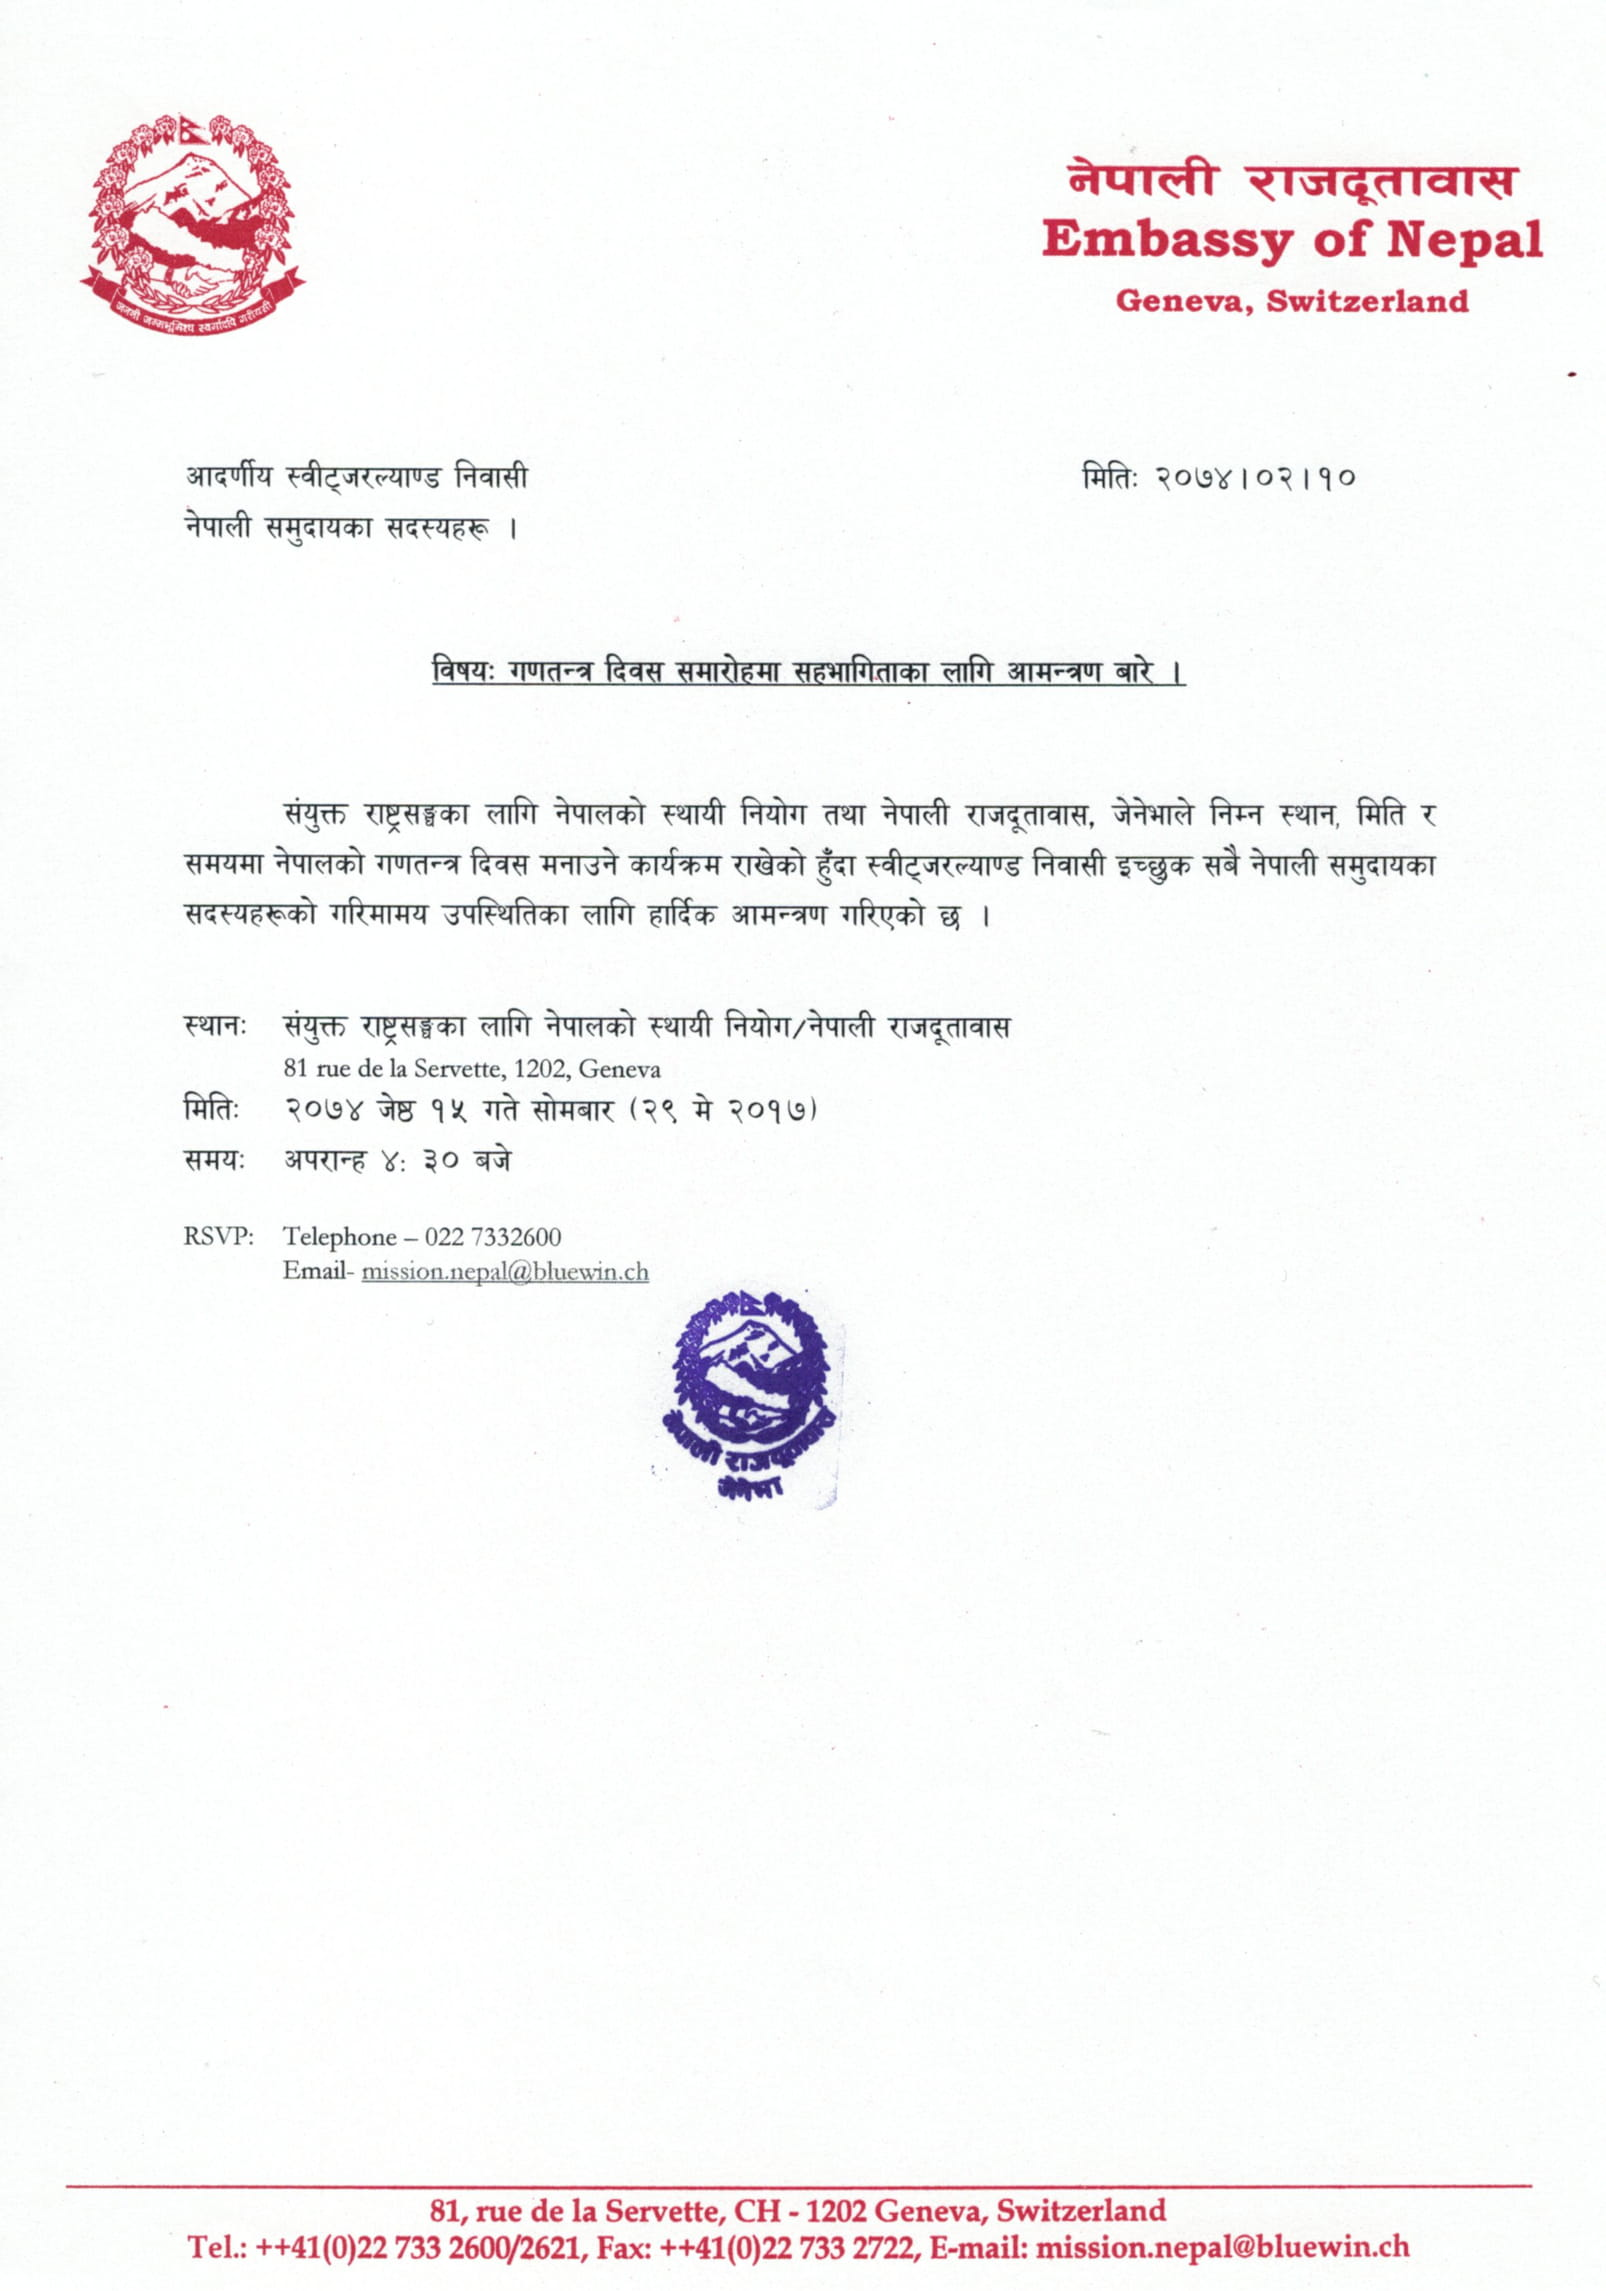 Invitation To Celebrate The Republic Day Of Nepal Permanent